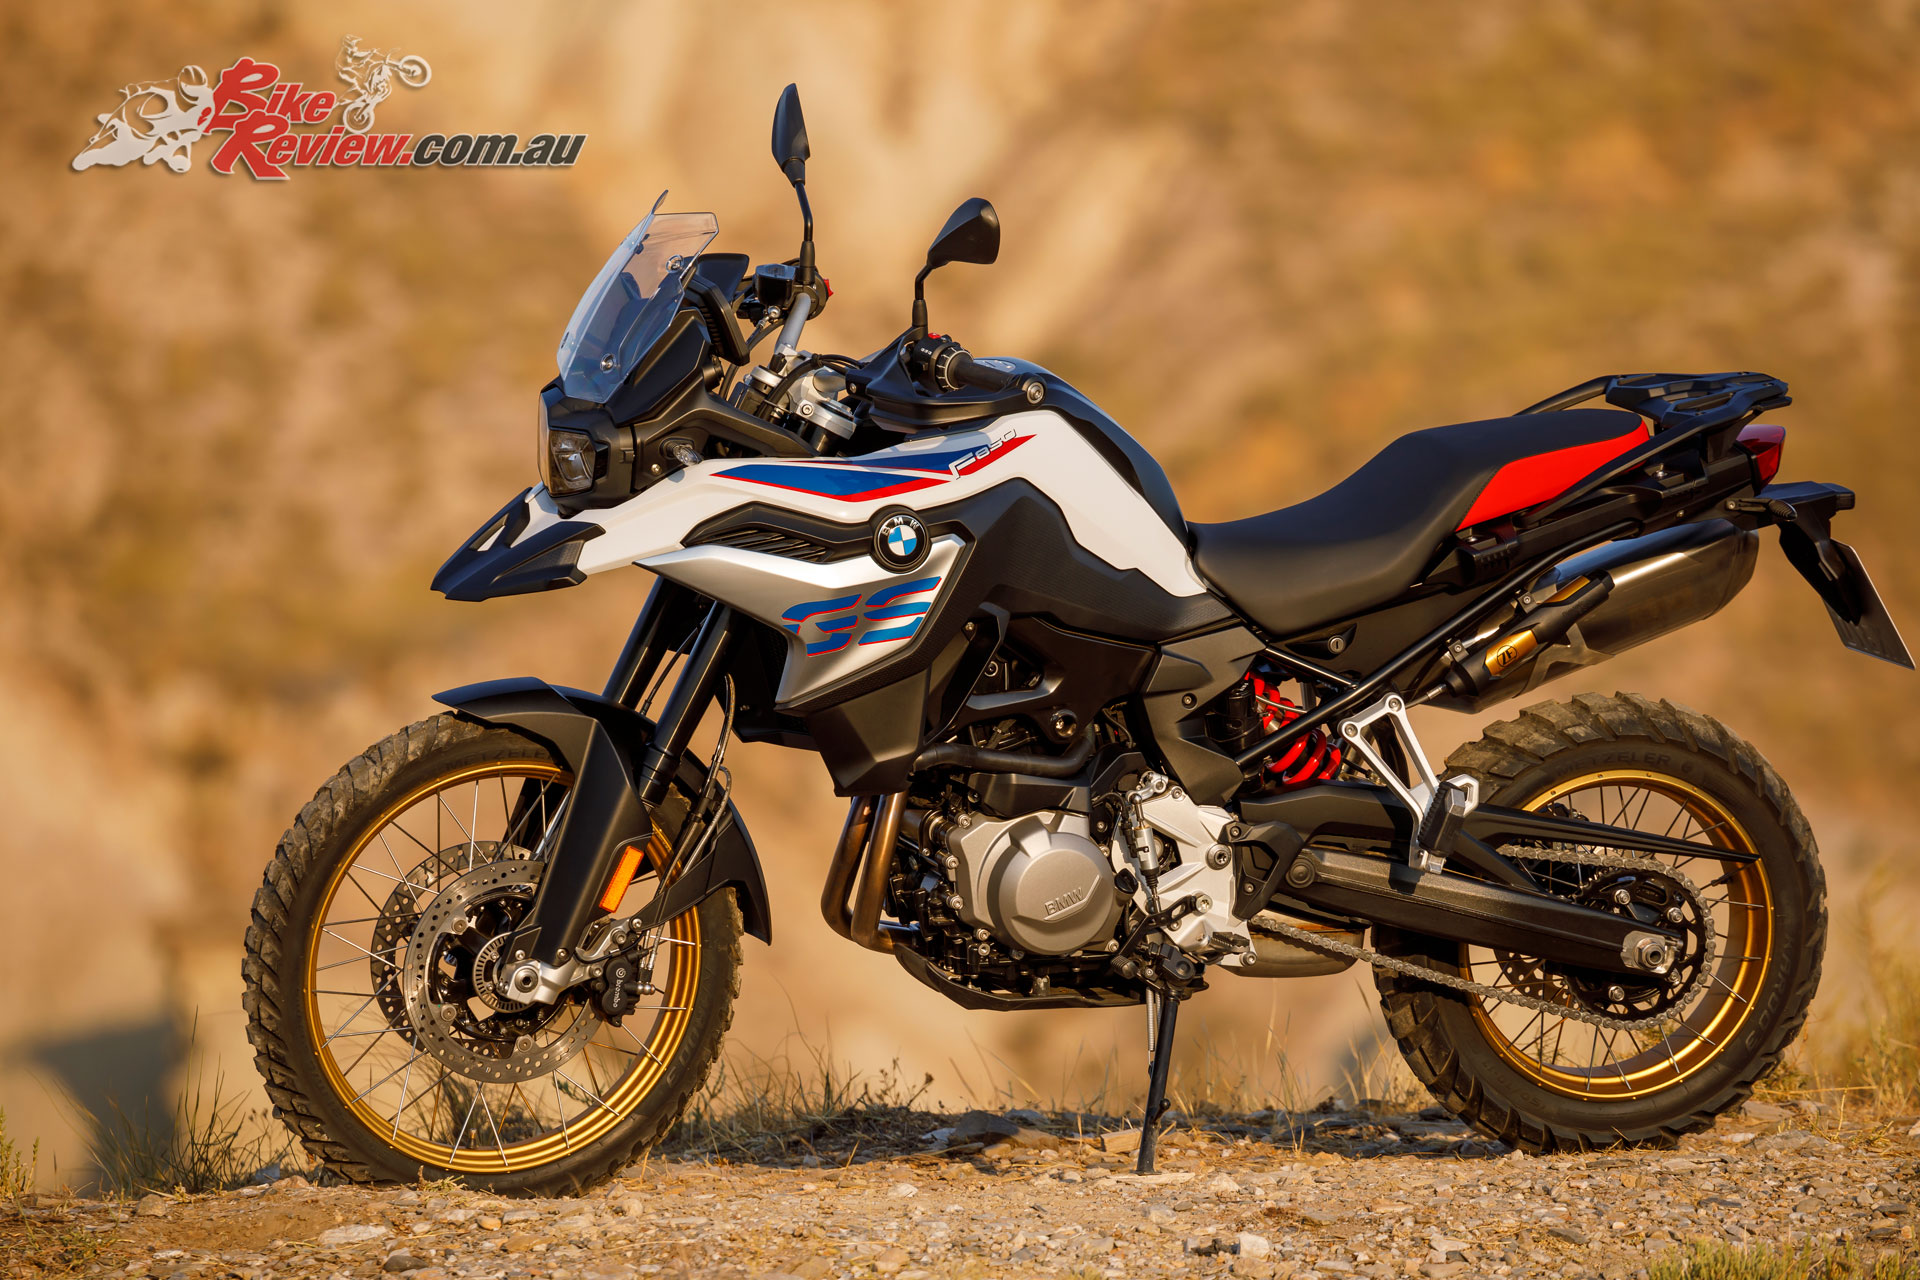 bmw unveil new 2018 f 750 850 gs c 400 x and k 1600 grand. Black Bedroom Furniture Sets. Home Design Ideas